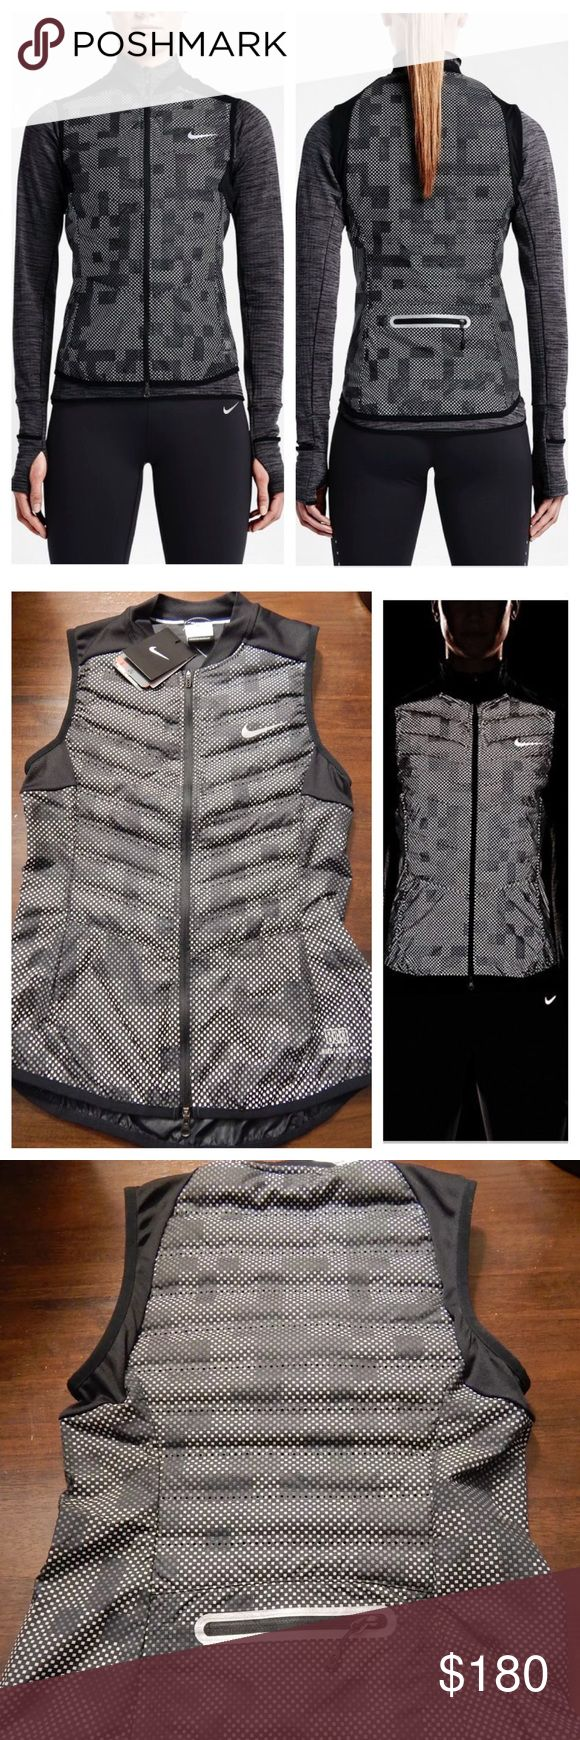 Nike womens aeroloft flash running down camo vest Brand new, authentic Nike womens aeroloft flash running down vest. $280 tags attached. This is the best running vest because you look super amazing if you just want it for a warm vest to add to your athleisure wardrobe, OR if you don't want to get hit by a car and you're running at night - this vest just might save you! :) (see the second picture to see how reflective it is.) 90% down. Super cool camo look. Nike womens aeroloft flash running…